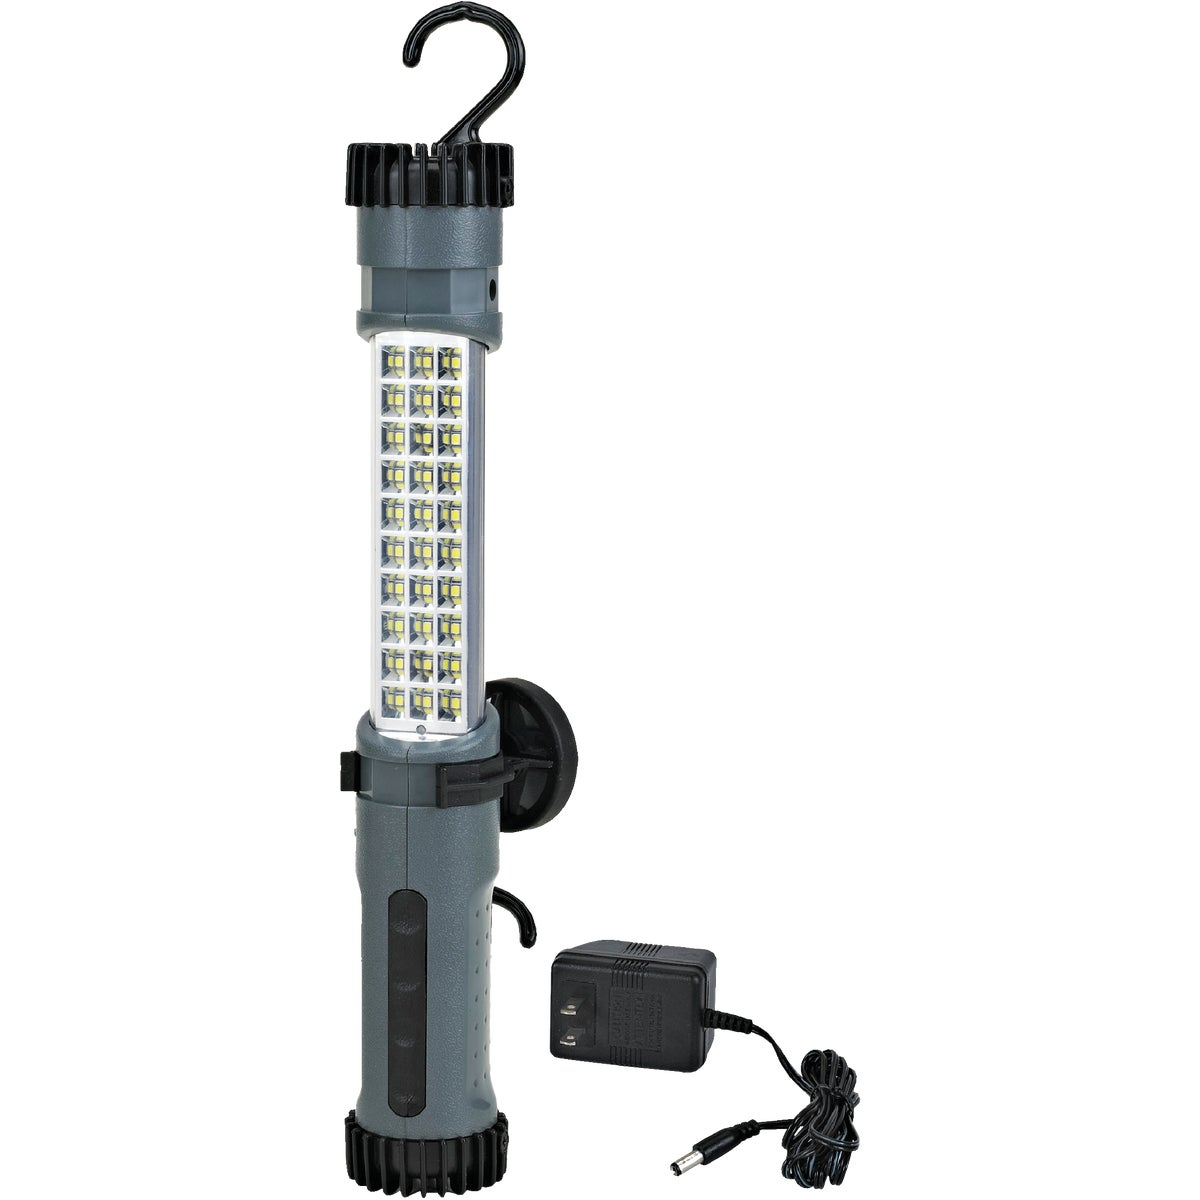 RECHARGE 30 LED LIGHT - KTR3000 by Alert Stamping & Mfg